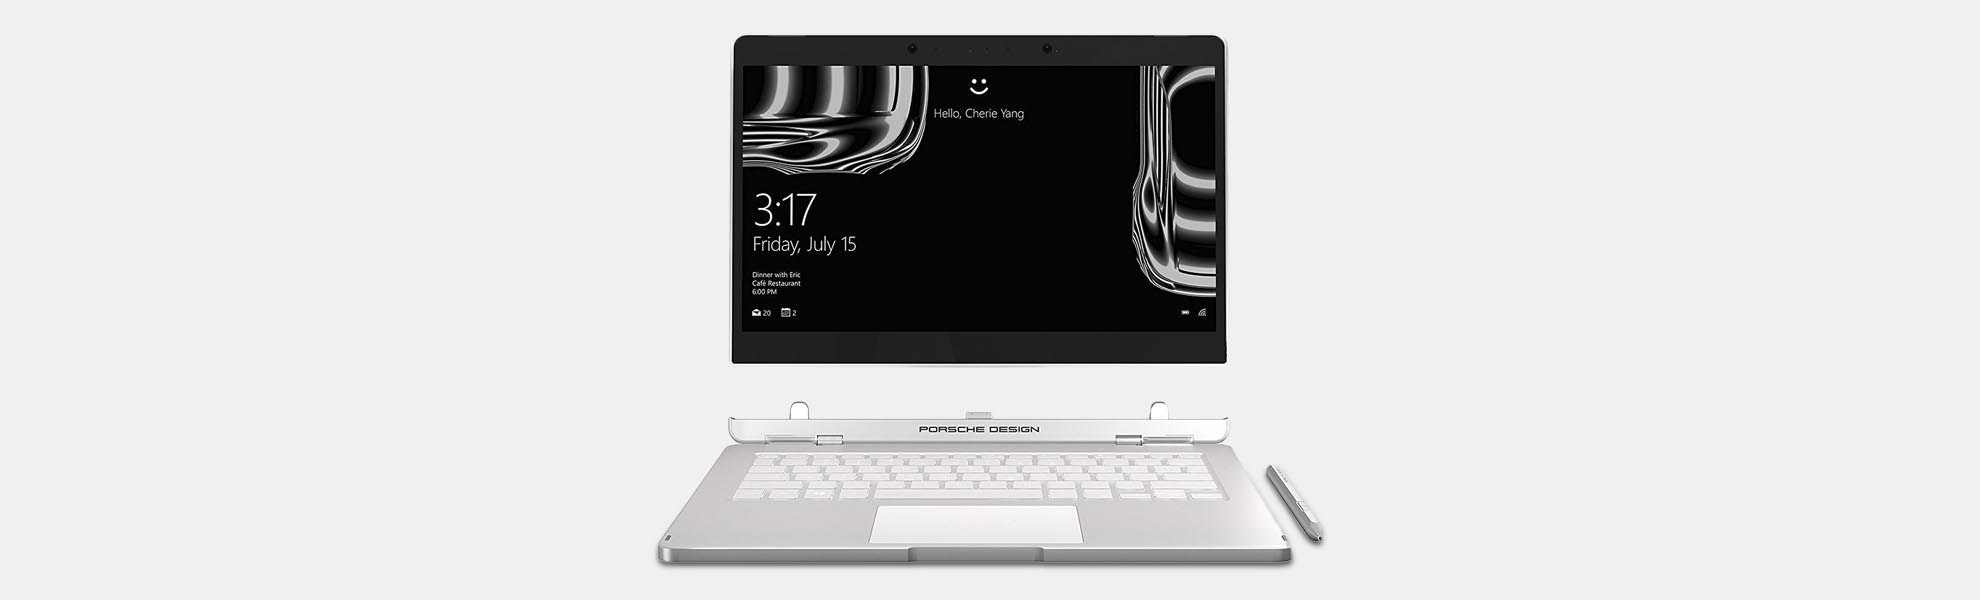 Porsche Design Book One Touchscreen Notebook